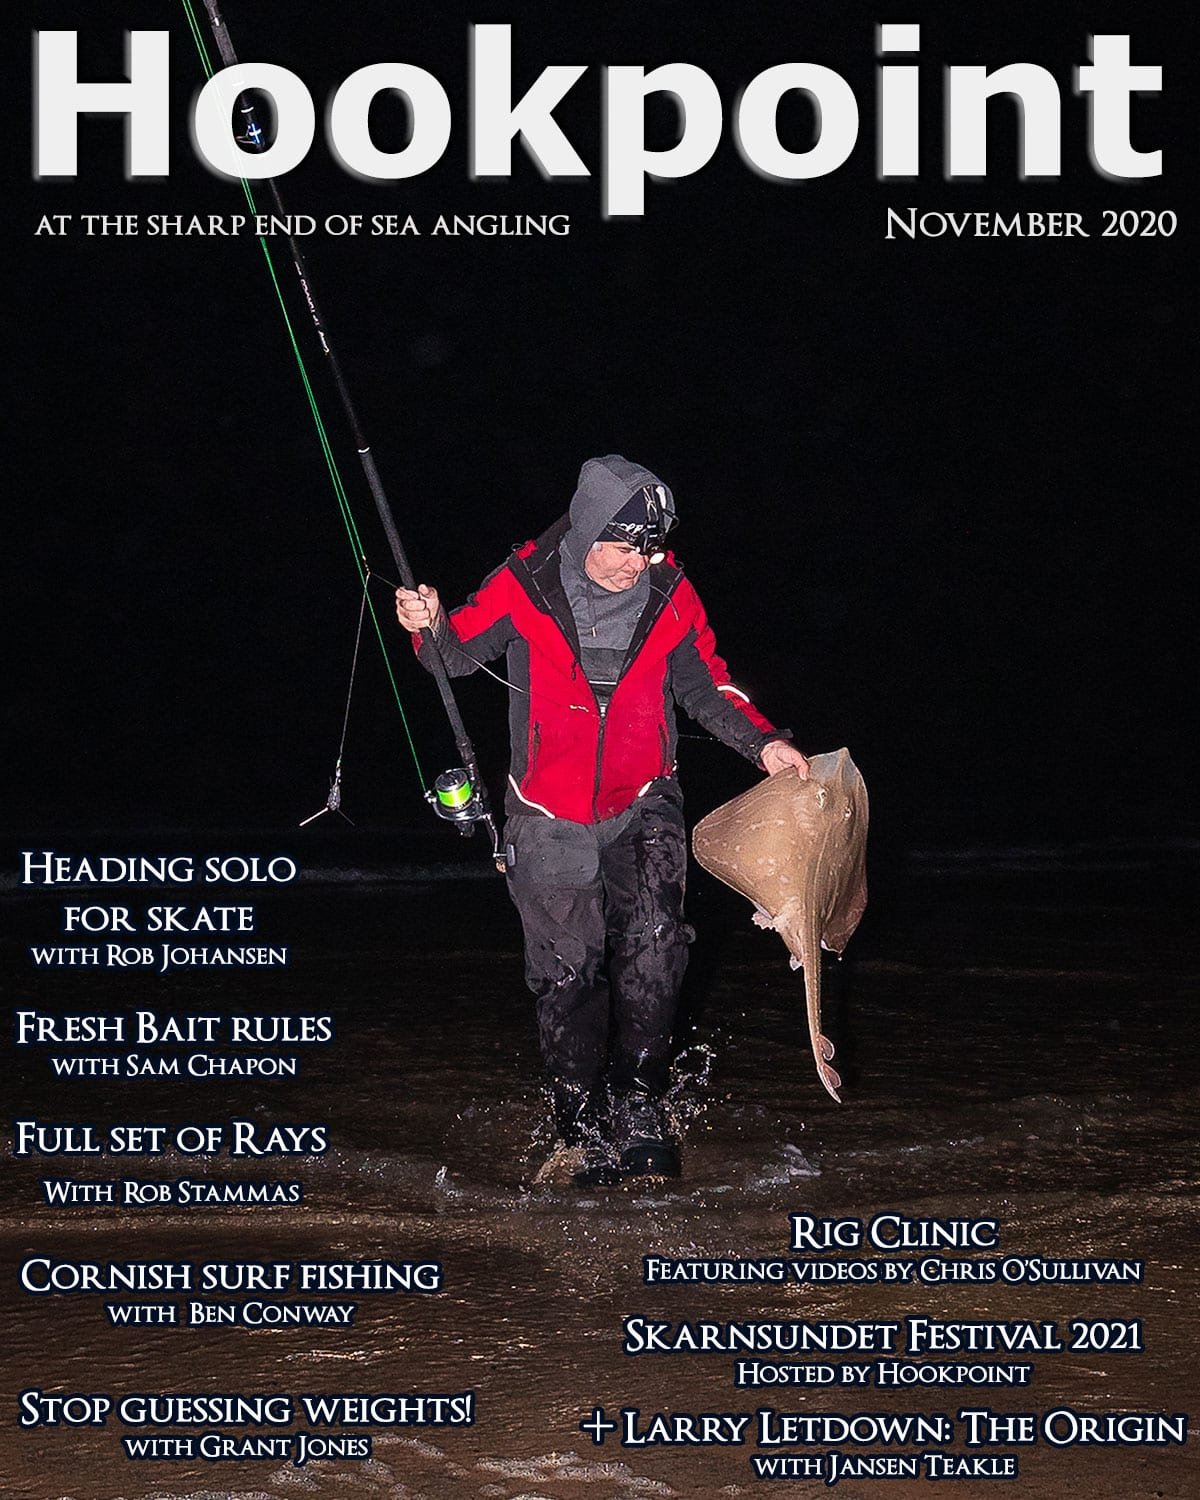 Hookpoint November issue